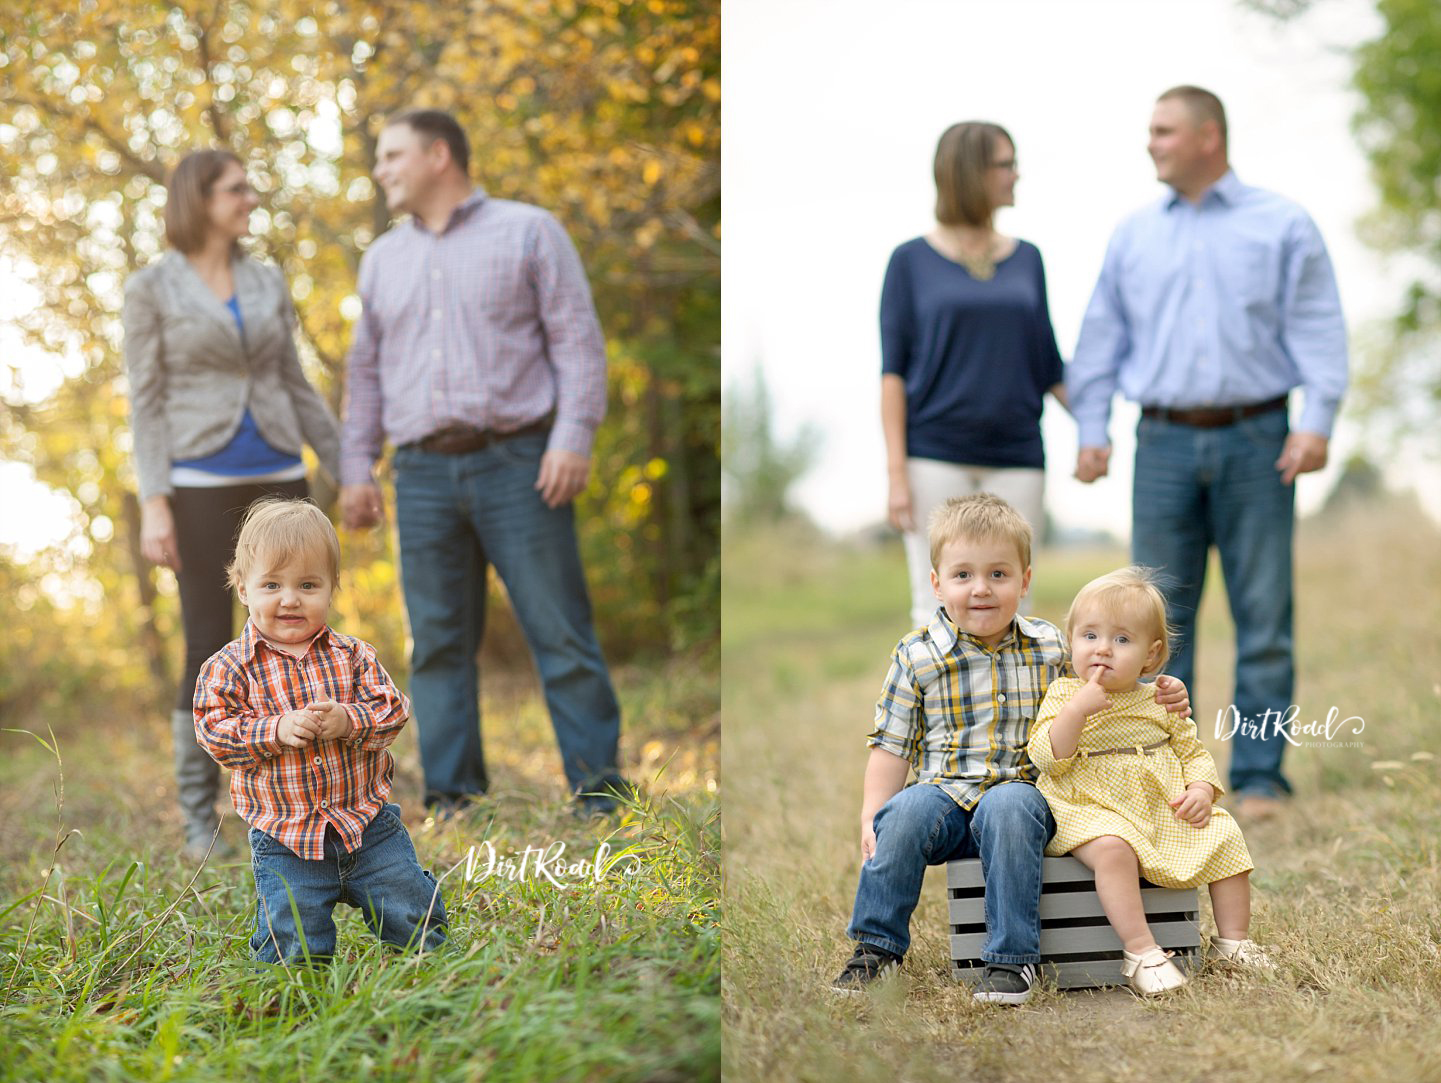 Nebraska Family Session, Nebraska Farm Photographer, Family On Farm, Kids Laughter Photos, Nebraska Photographer, Nebraska Newborn Photographer, Nebraska Family Photographer, Nebraska Senior Photographer, Nebraska Child Photographer, Wilber Nebraska, Dorchester Nebraska, Crete Nebraska, Friend Nebraska, DeWitt Nebraska, Plymouth Nebraska, Roca Nebraska, Sprague Nebraska, Martell Nebraska, Kramer Nebraska, Lincoln Nebraska, Milford Nebraska, Wilber Nebraska Photographer, Dorchester Nebraska Photographer, Crete Nebraska Photographer, Friend Nebraska Photographer, DeWitt Nebraska Photographer, Plymouth Nebraska Photographer, Roca Nebraska Photographer, Sprague Nebraska Photographer, Martell Nebraska Photographer, Kramer Nebraska Photographer, Lincoln Nebraska Photographer, Milford Nebraska Photographer